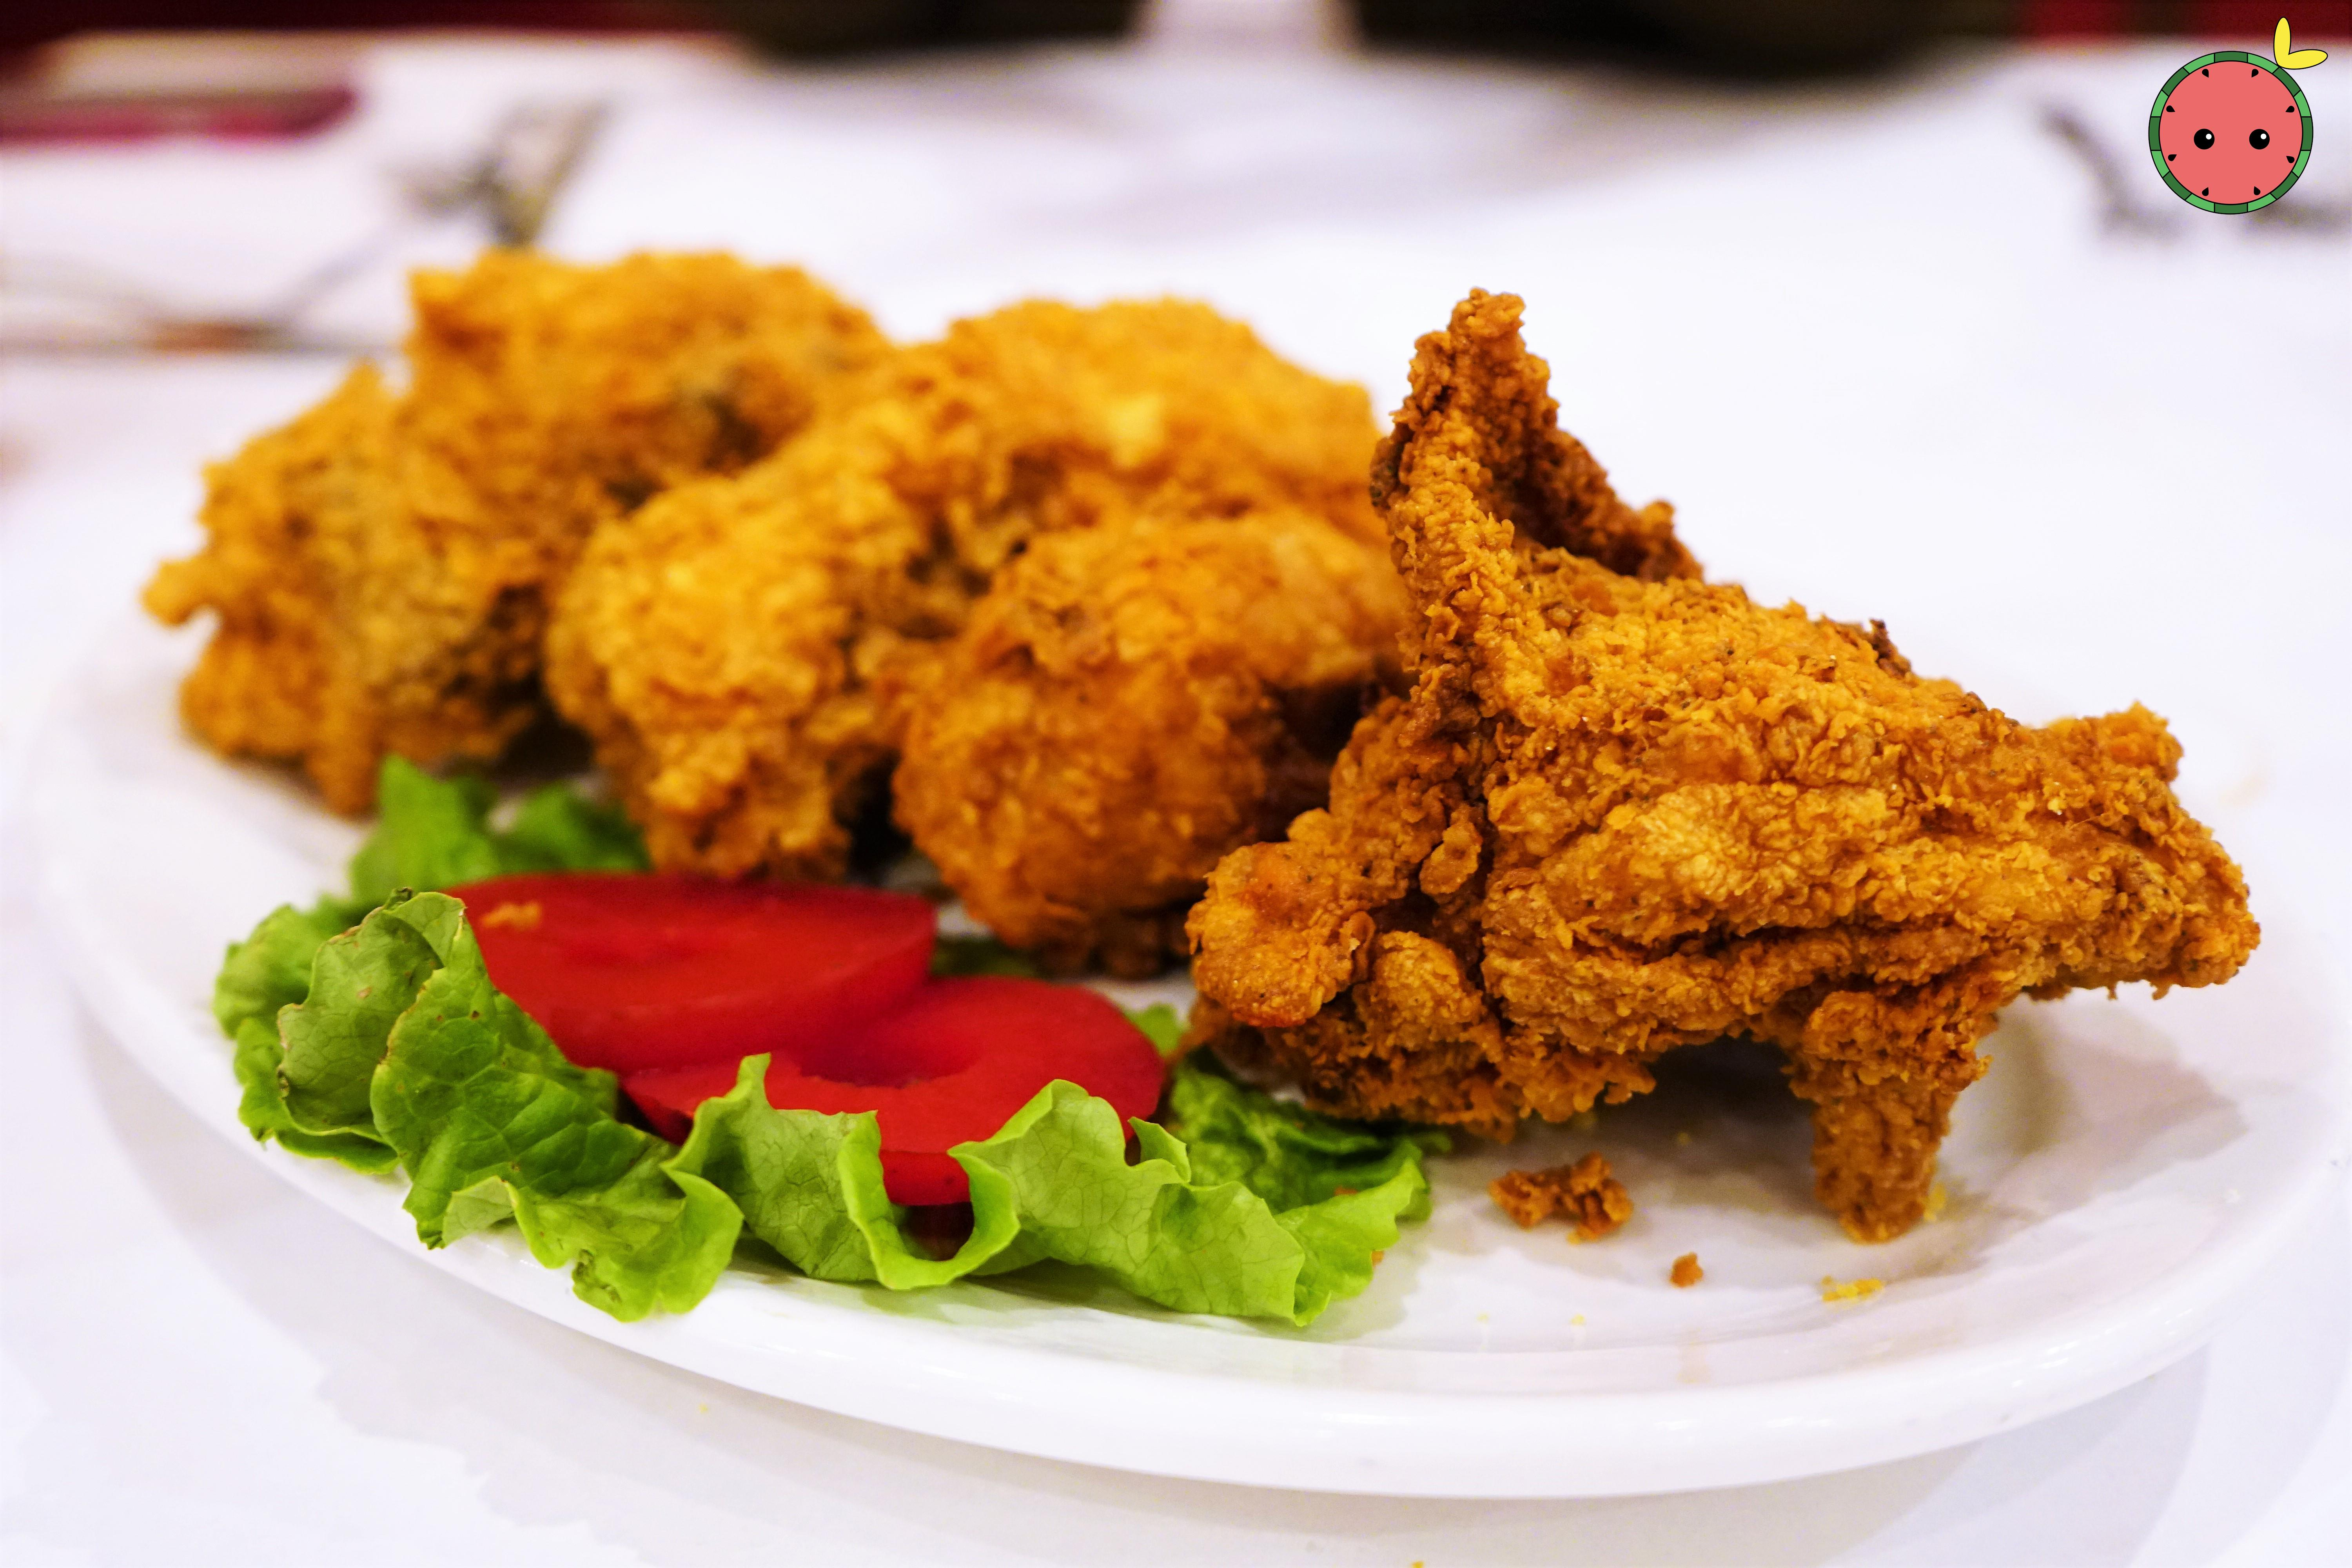 Fried Chicken A-La-Dooky Chase Style